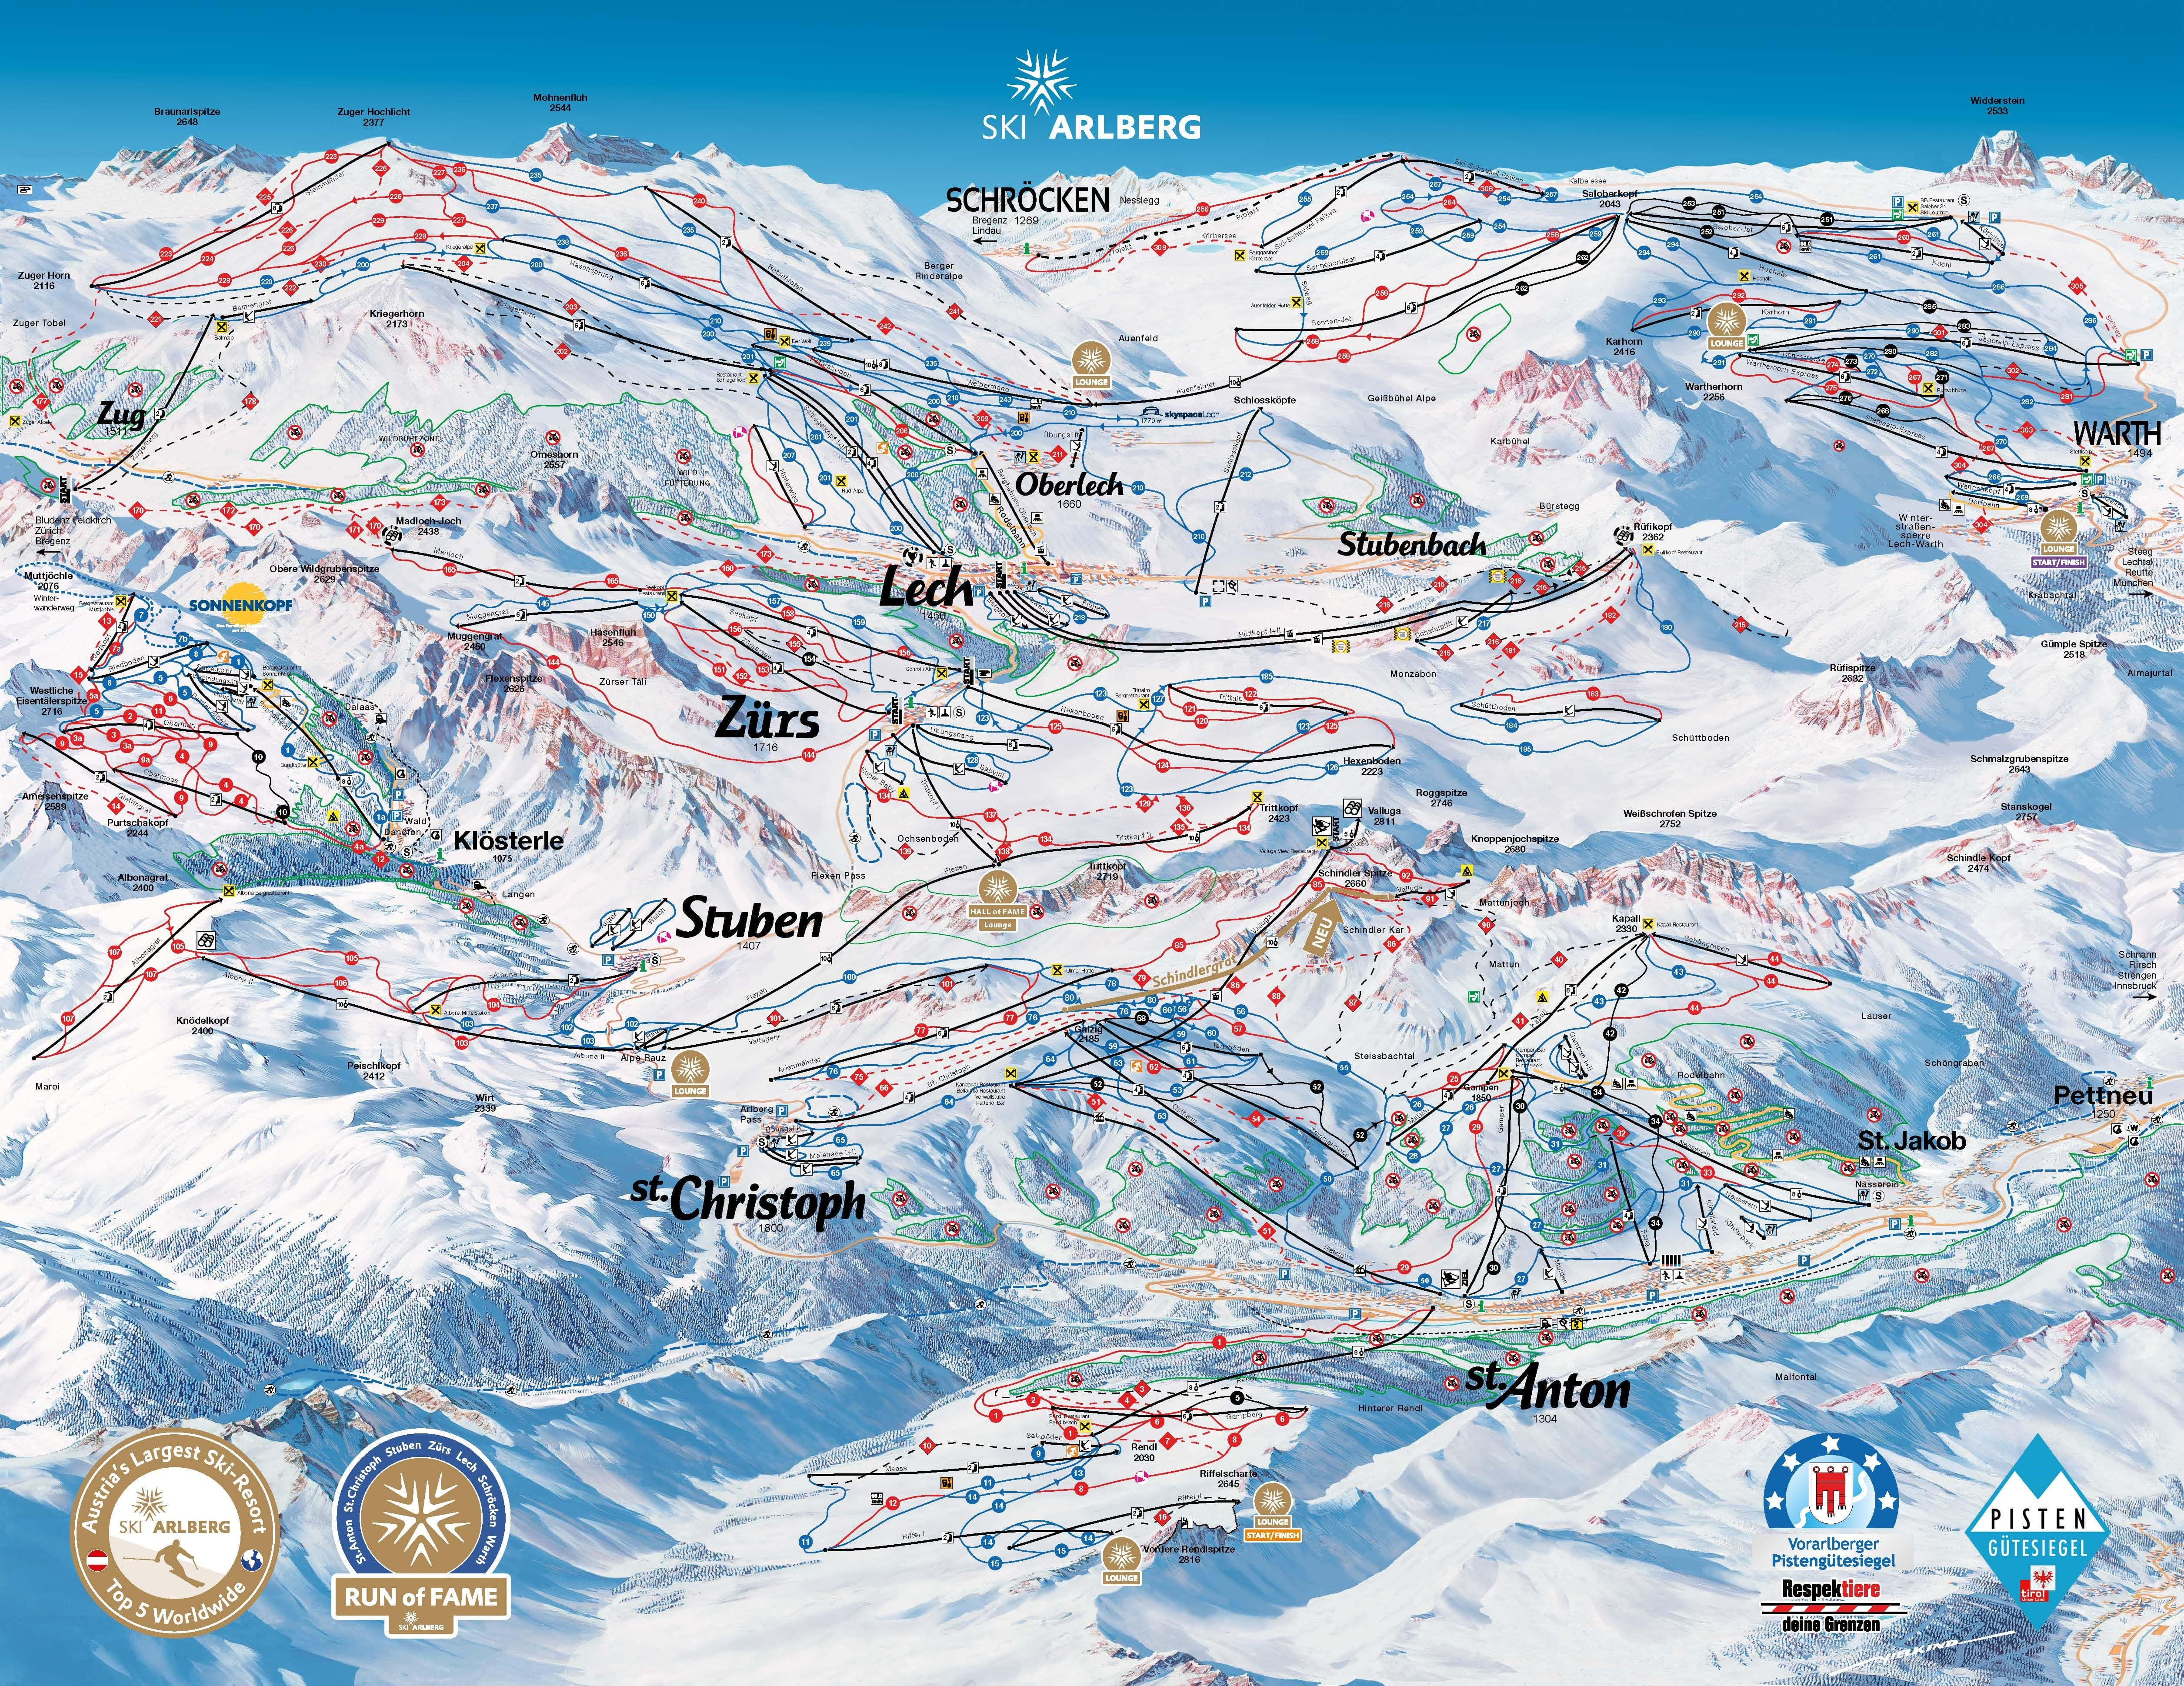 St Anton Piste / Trail Map